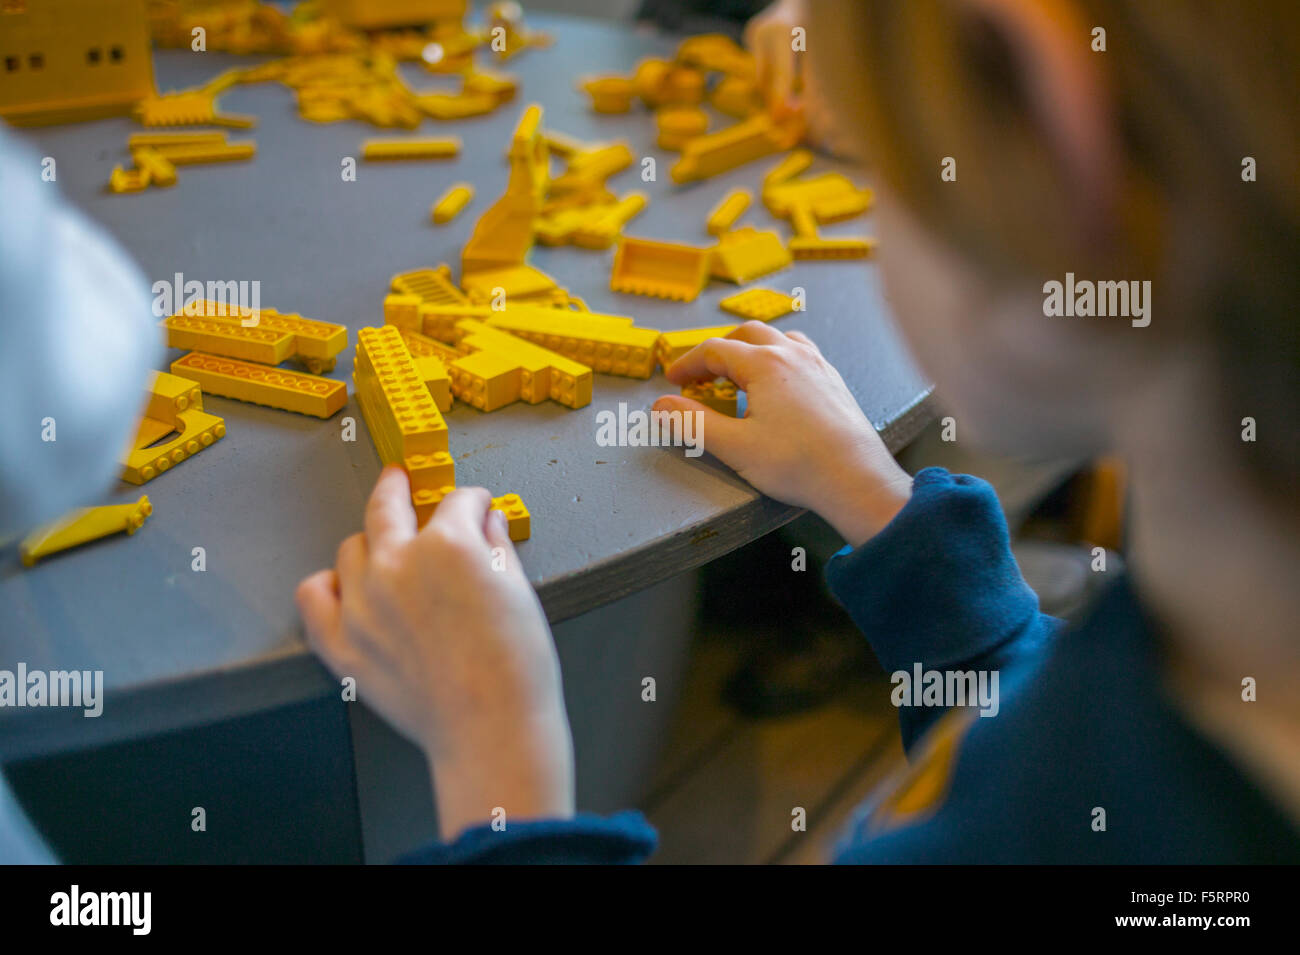 Sweden, Vastergotland, Lerum, Boy (8-9) playing with toy blocks - Stock Image